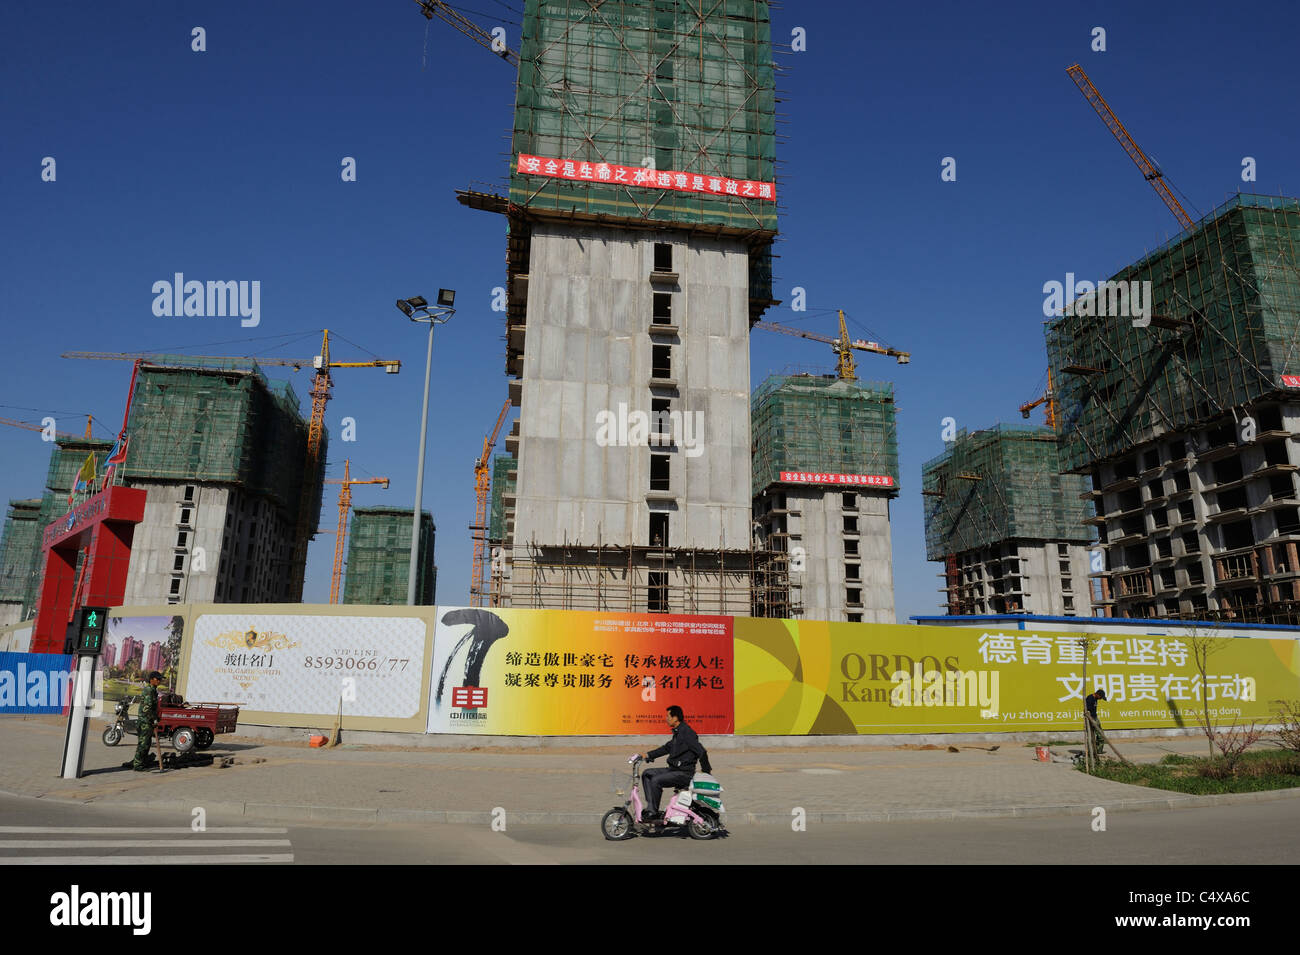 Properties in construction in Kangbashi, Ordos, Inner Mongolia, China. 13-May-2011 - Stock Image